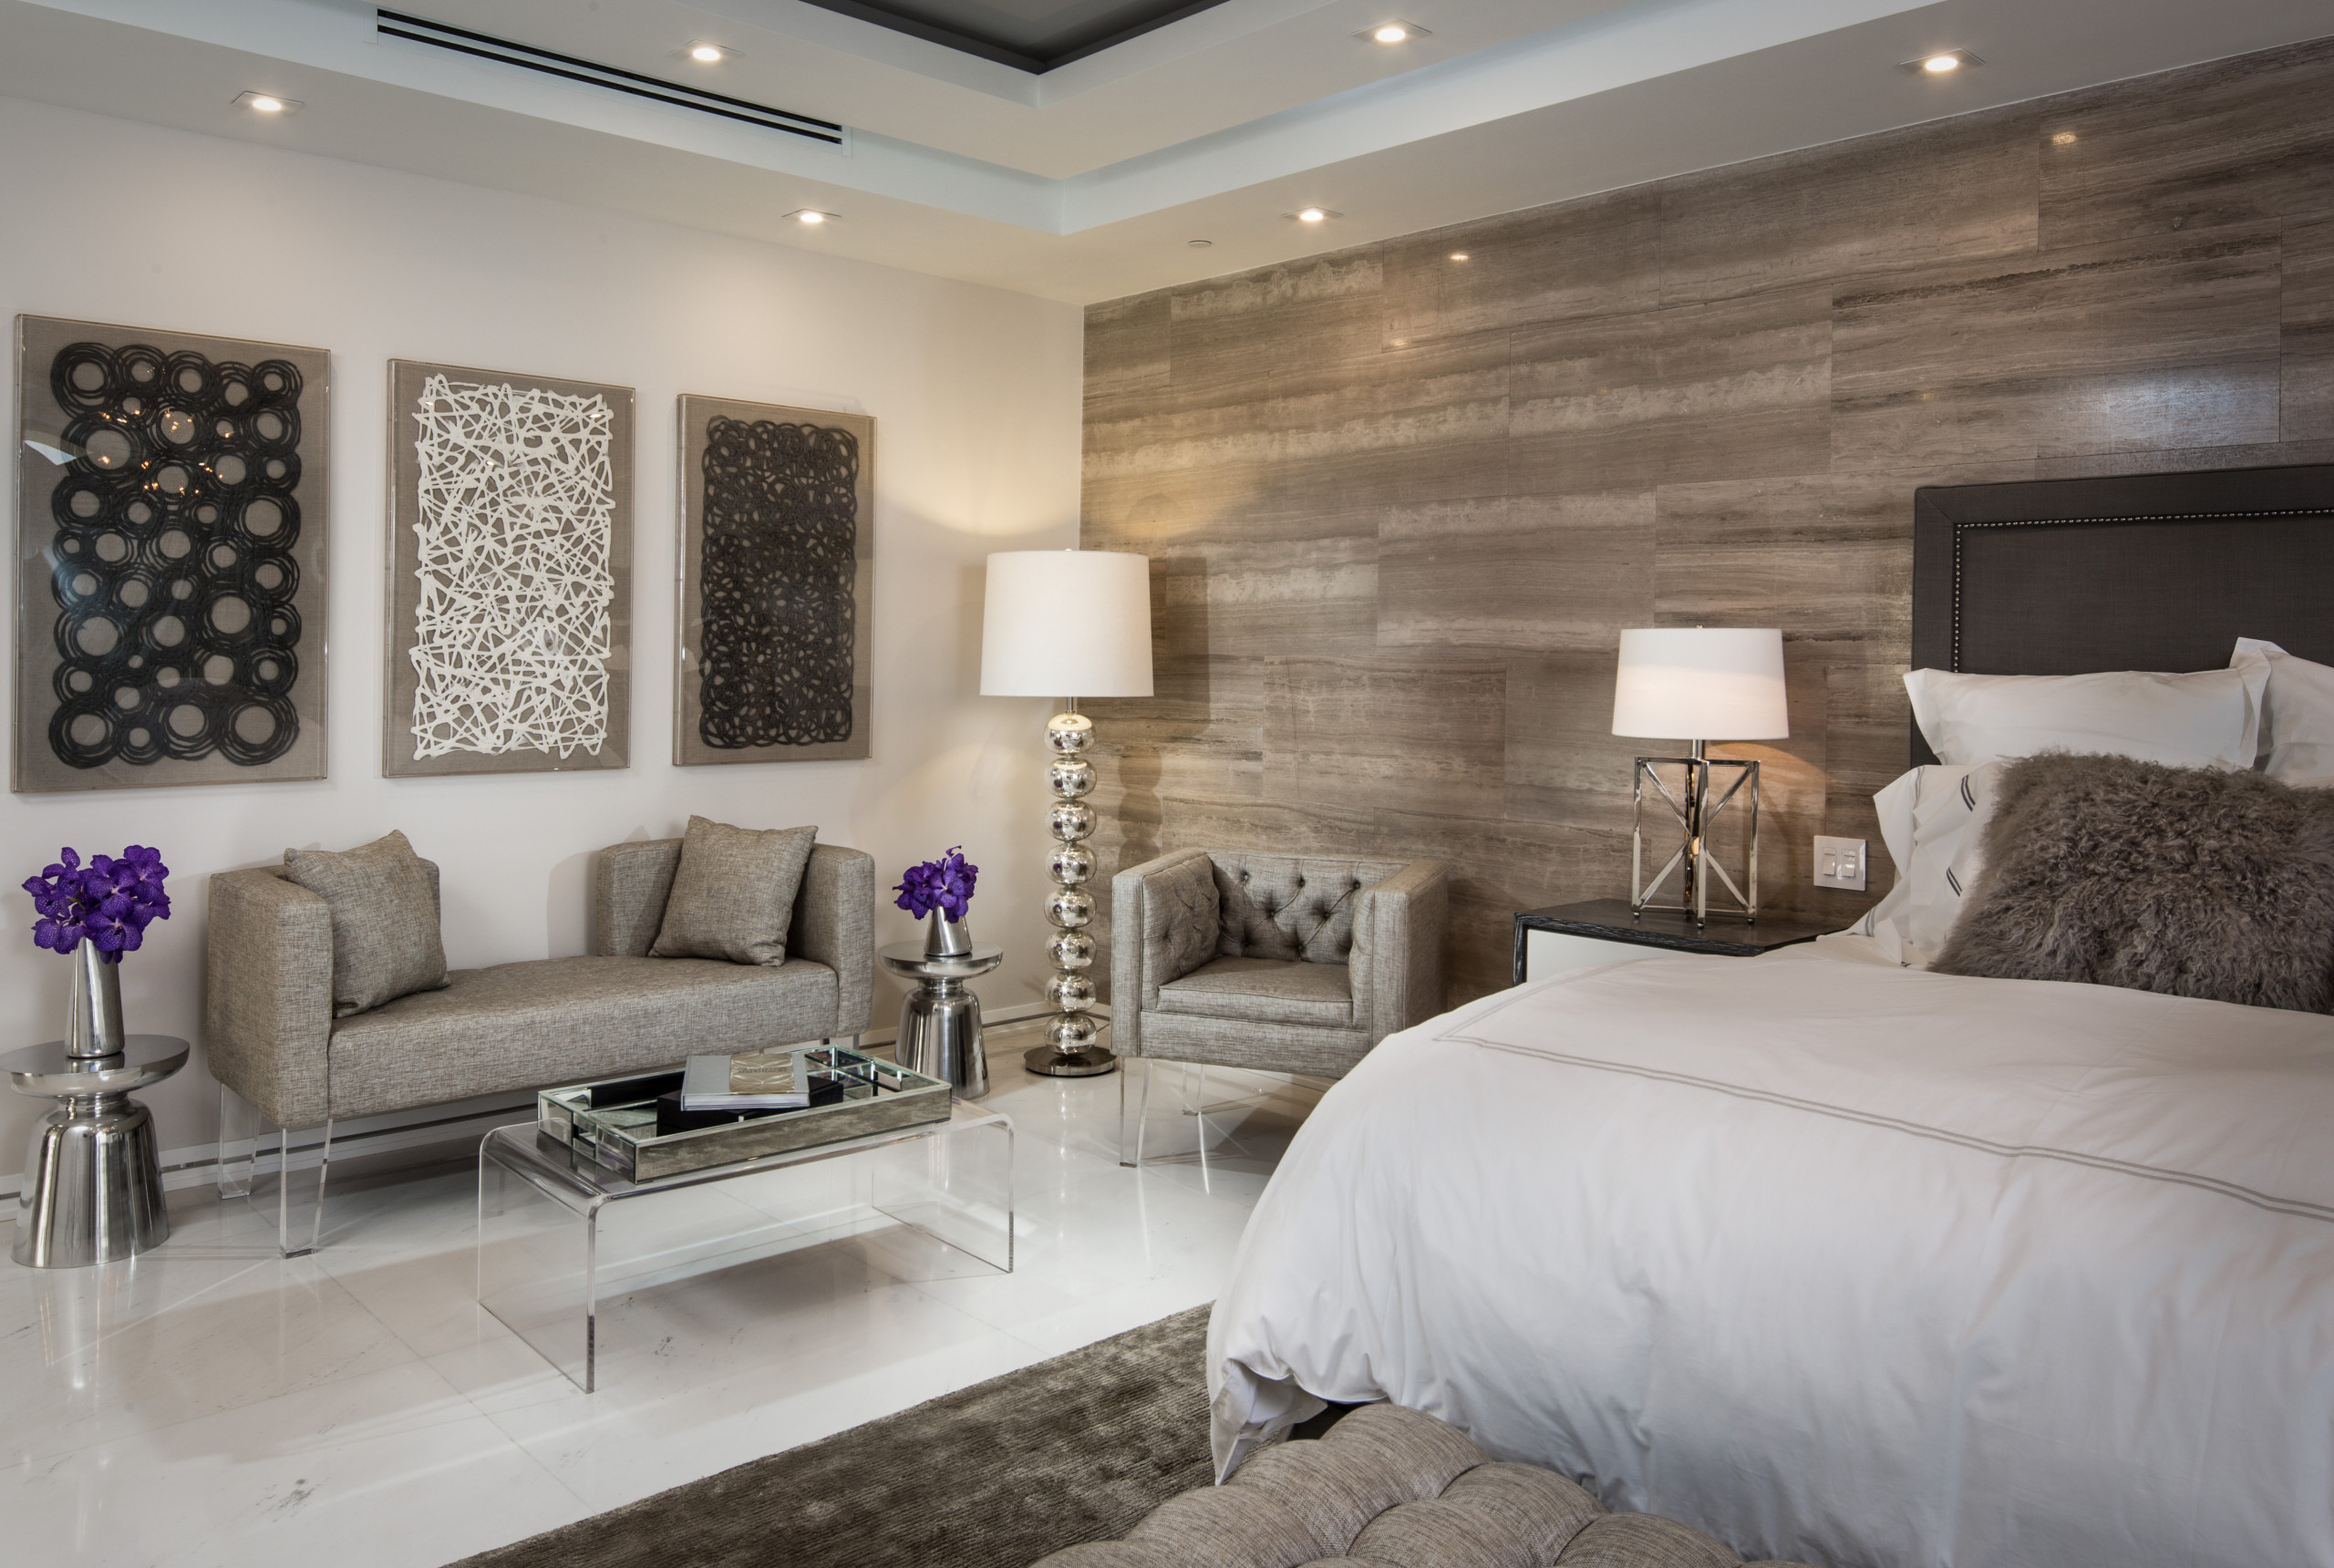 75 Beautiful Marble Floor Bedroom Pictures Ideas December 2020 Houzz